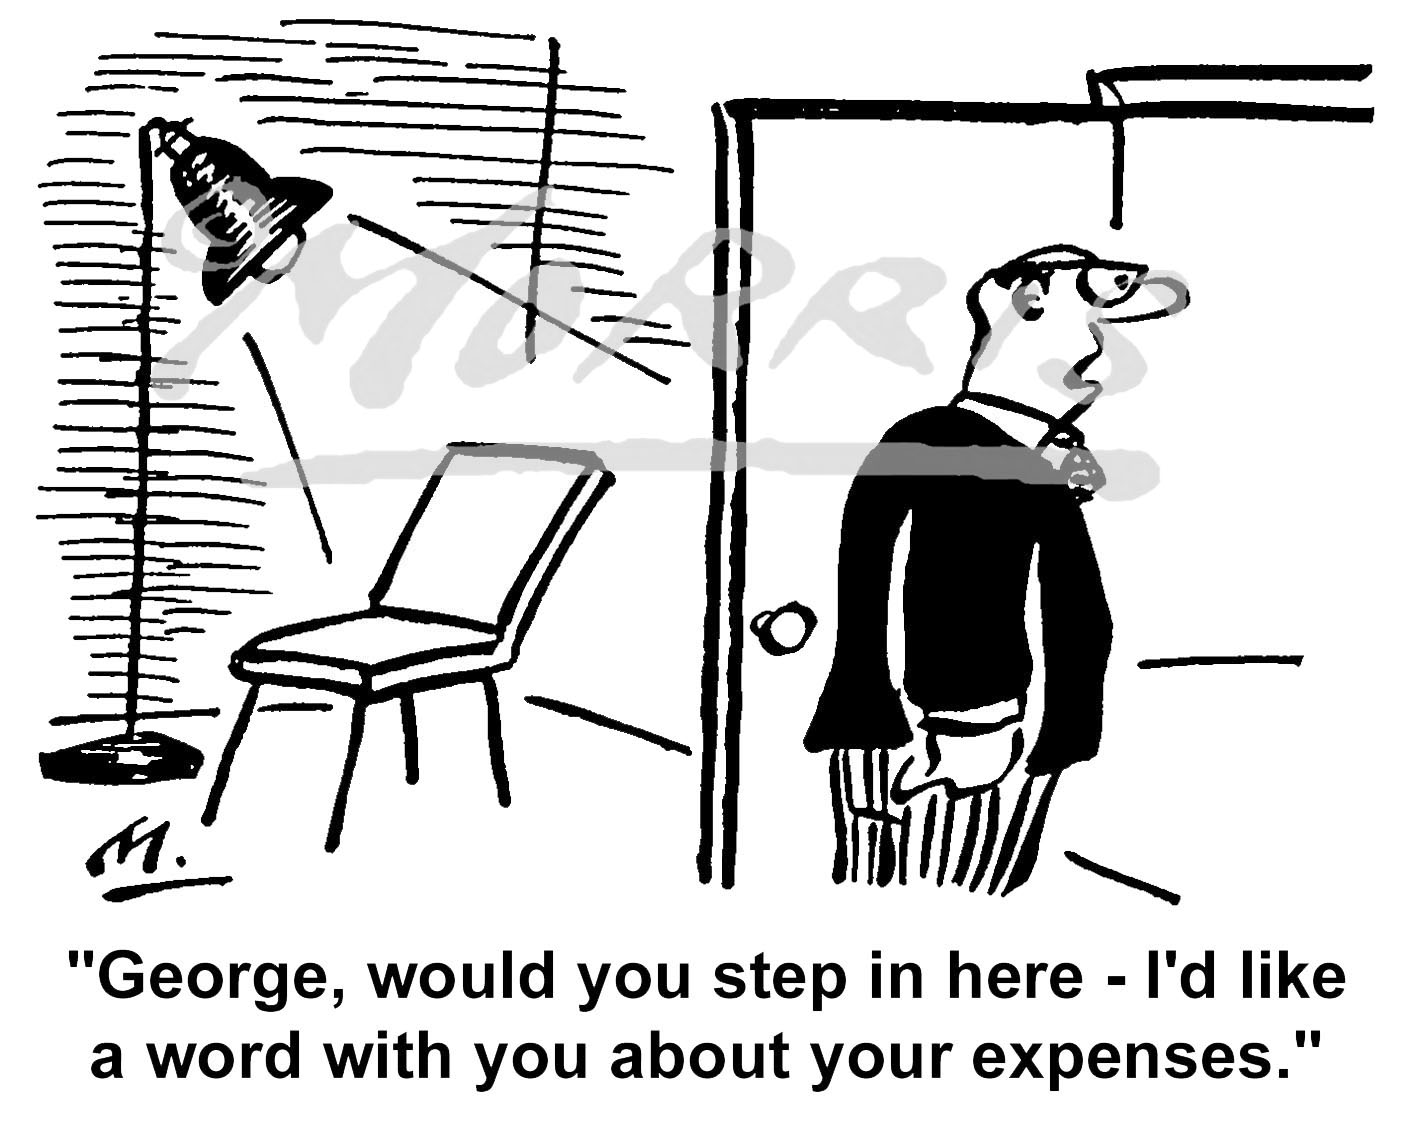 Employee expenses claim cartoon – Ref: 0816bw